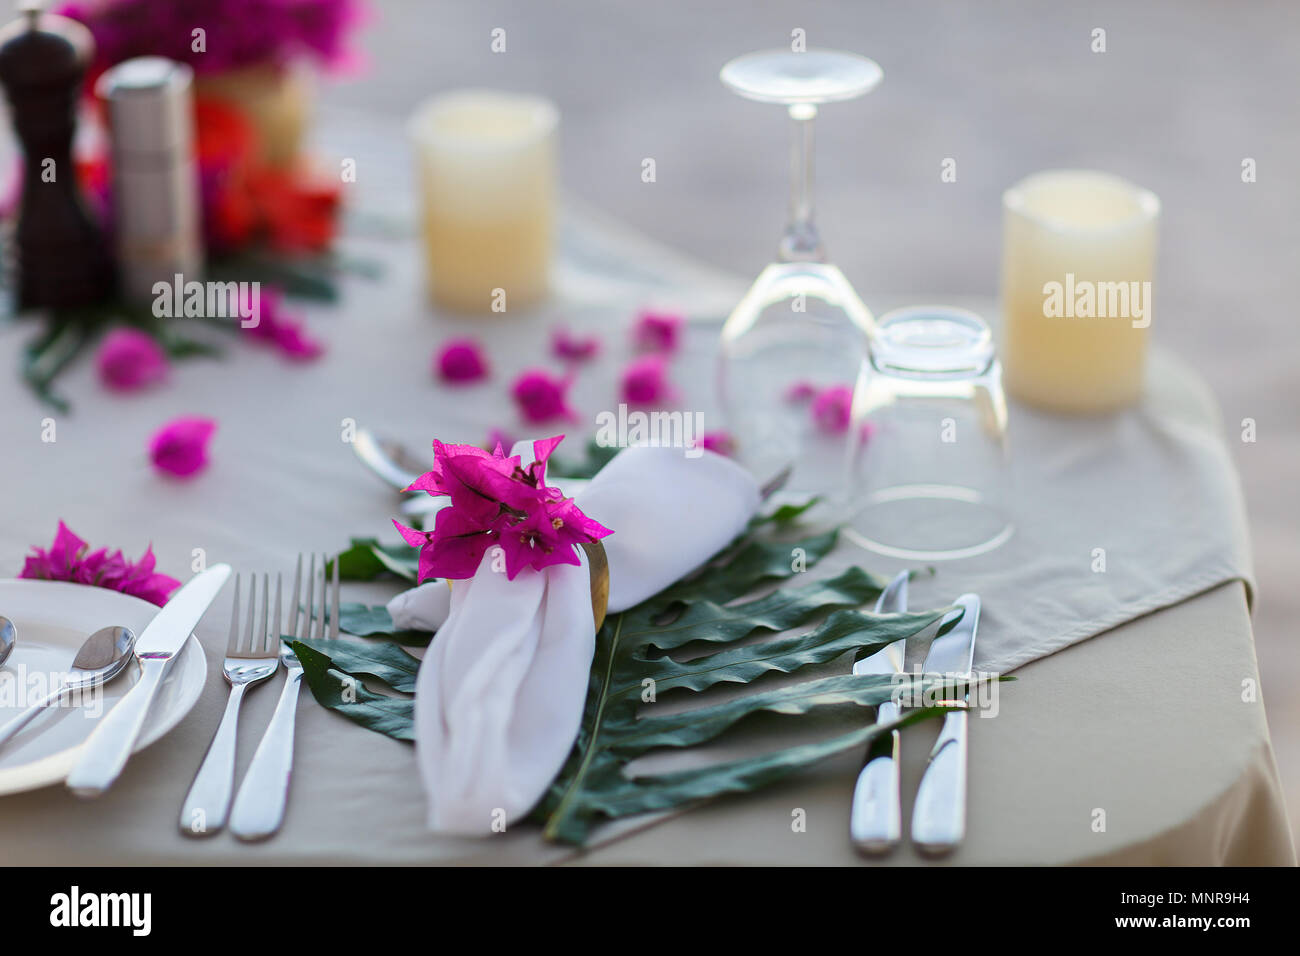 Beautifully served table for romantic event celebration or wedding - Stock Image